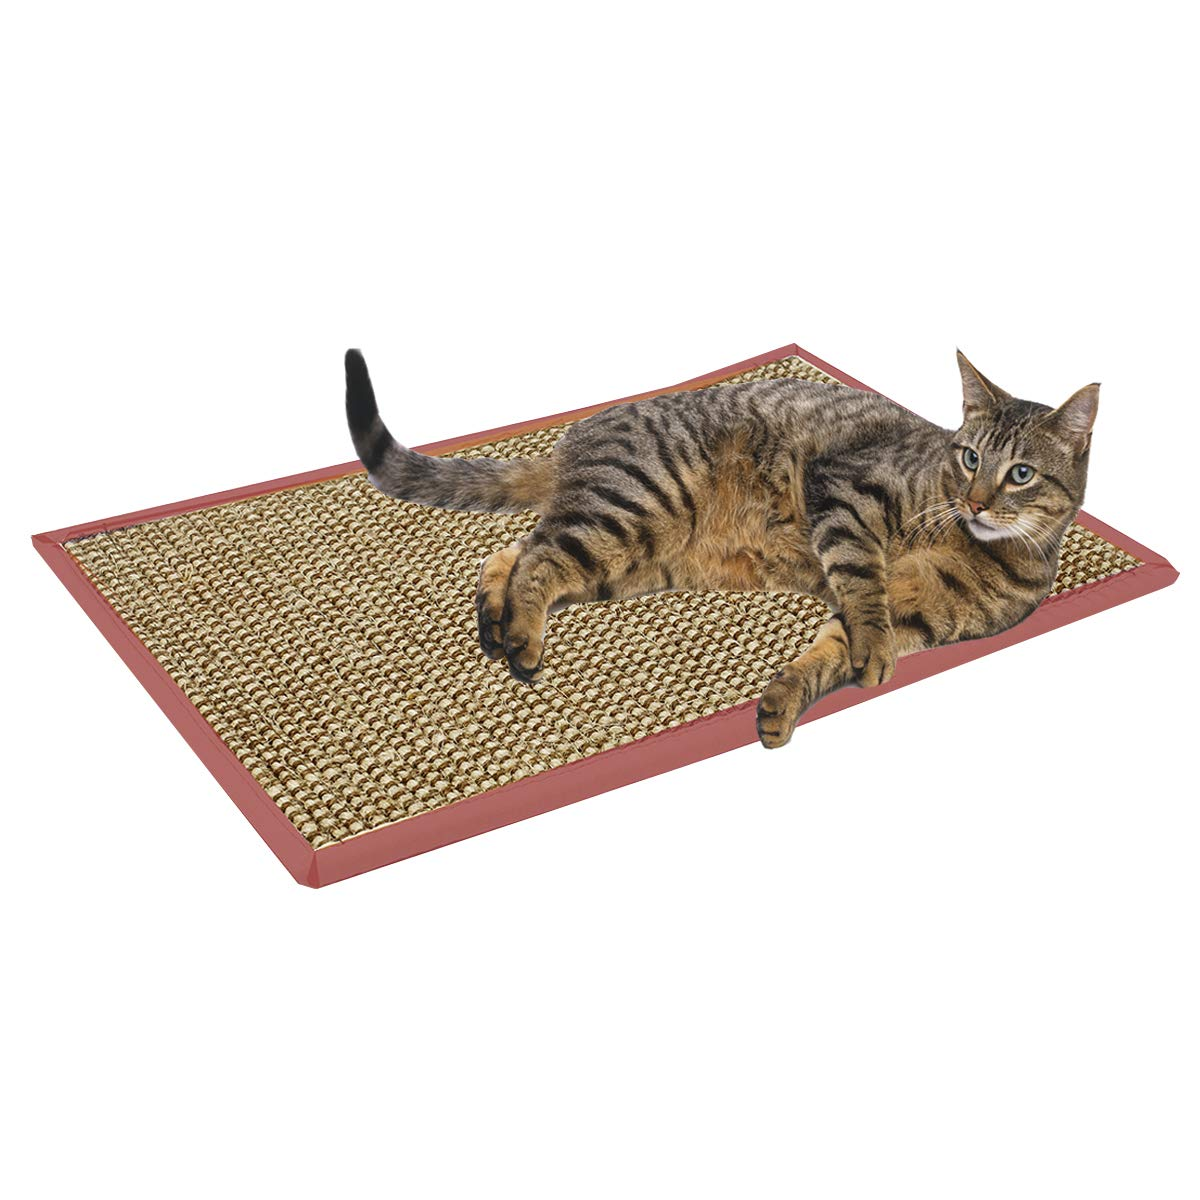 Treasborn Durable Cat Scratcher Thick Sisal Scratching Pad for Cats Anti-Slip Scratch Sleeping Mat No Mess Furniture Protecter Natural for Claws by Treasborn